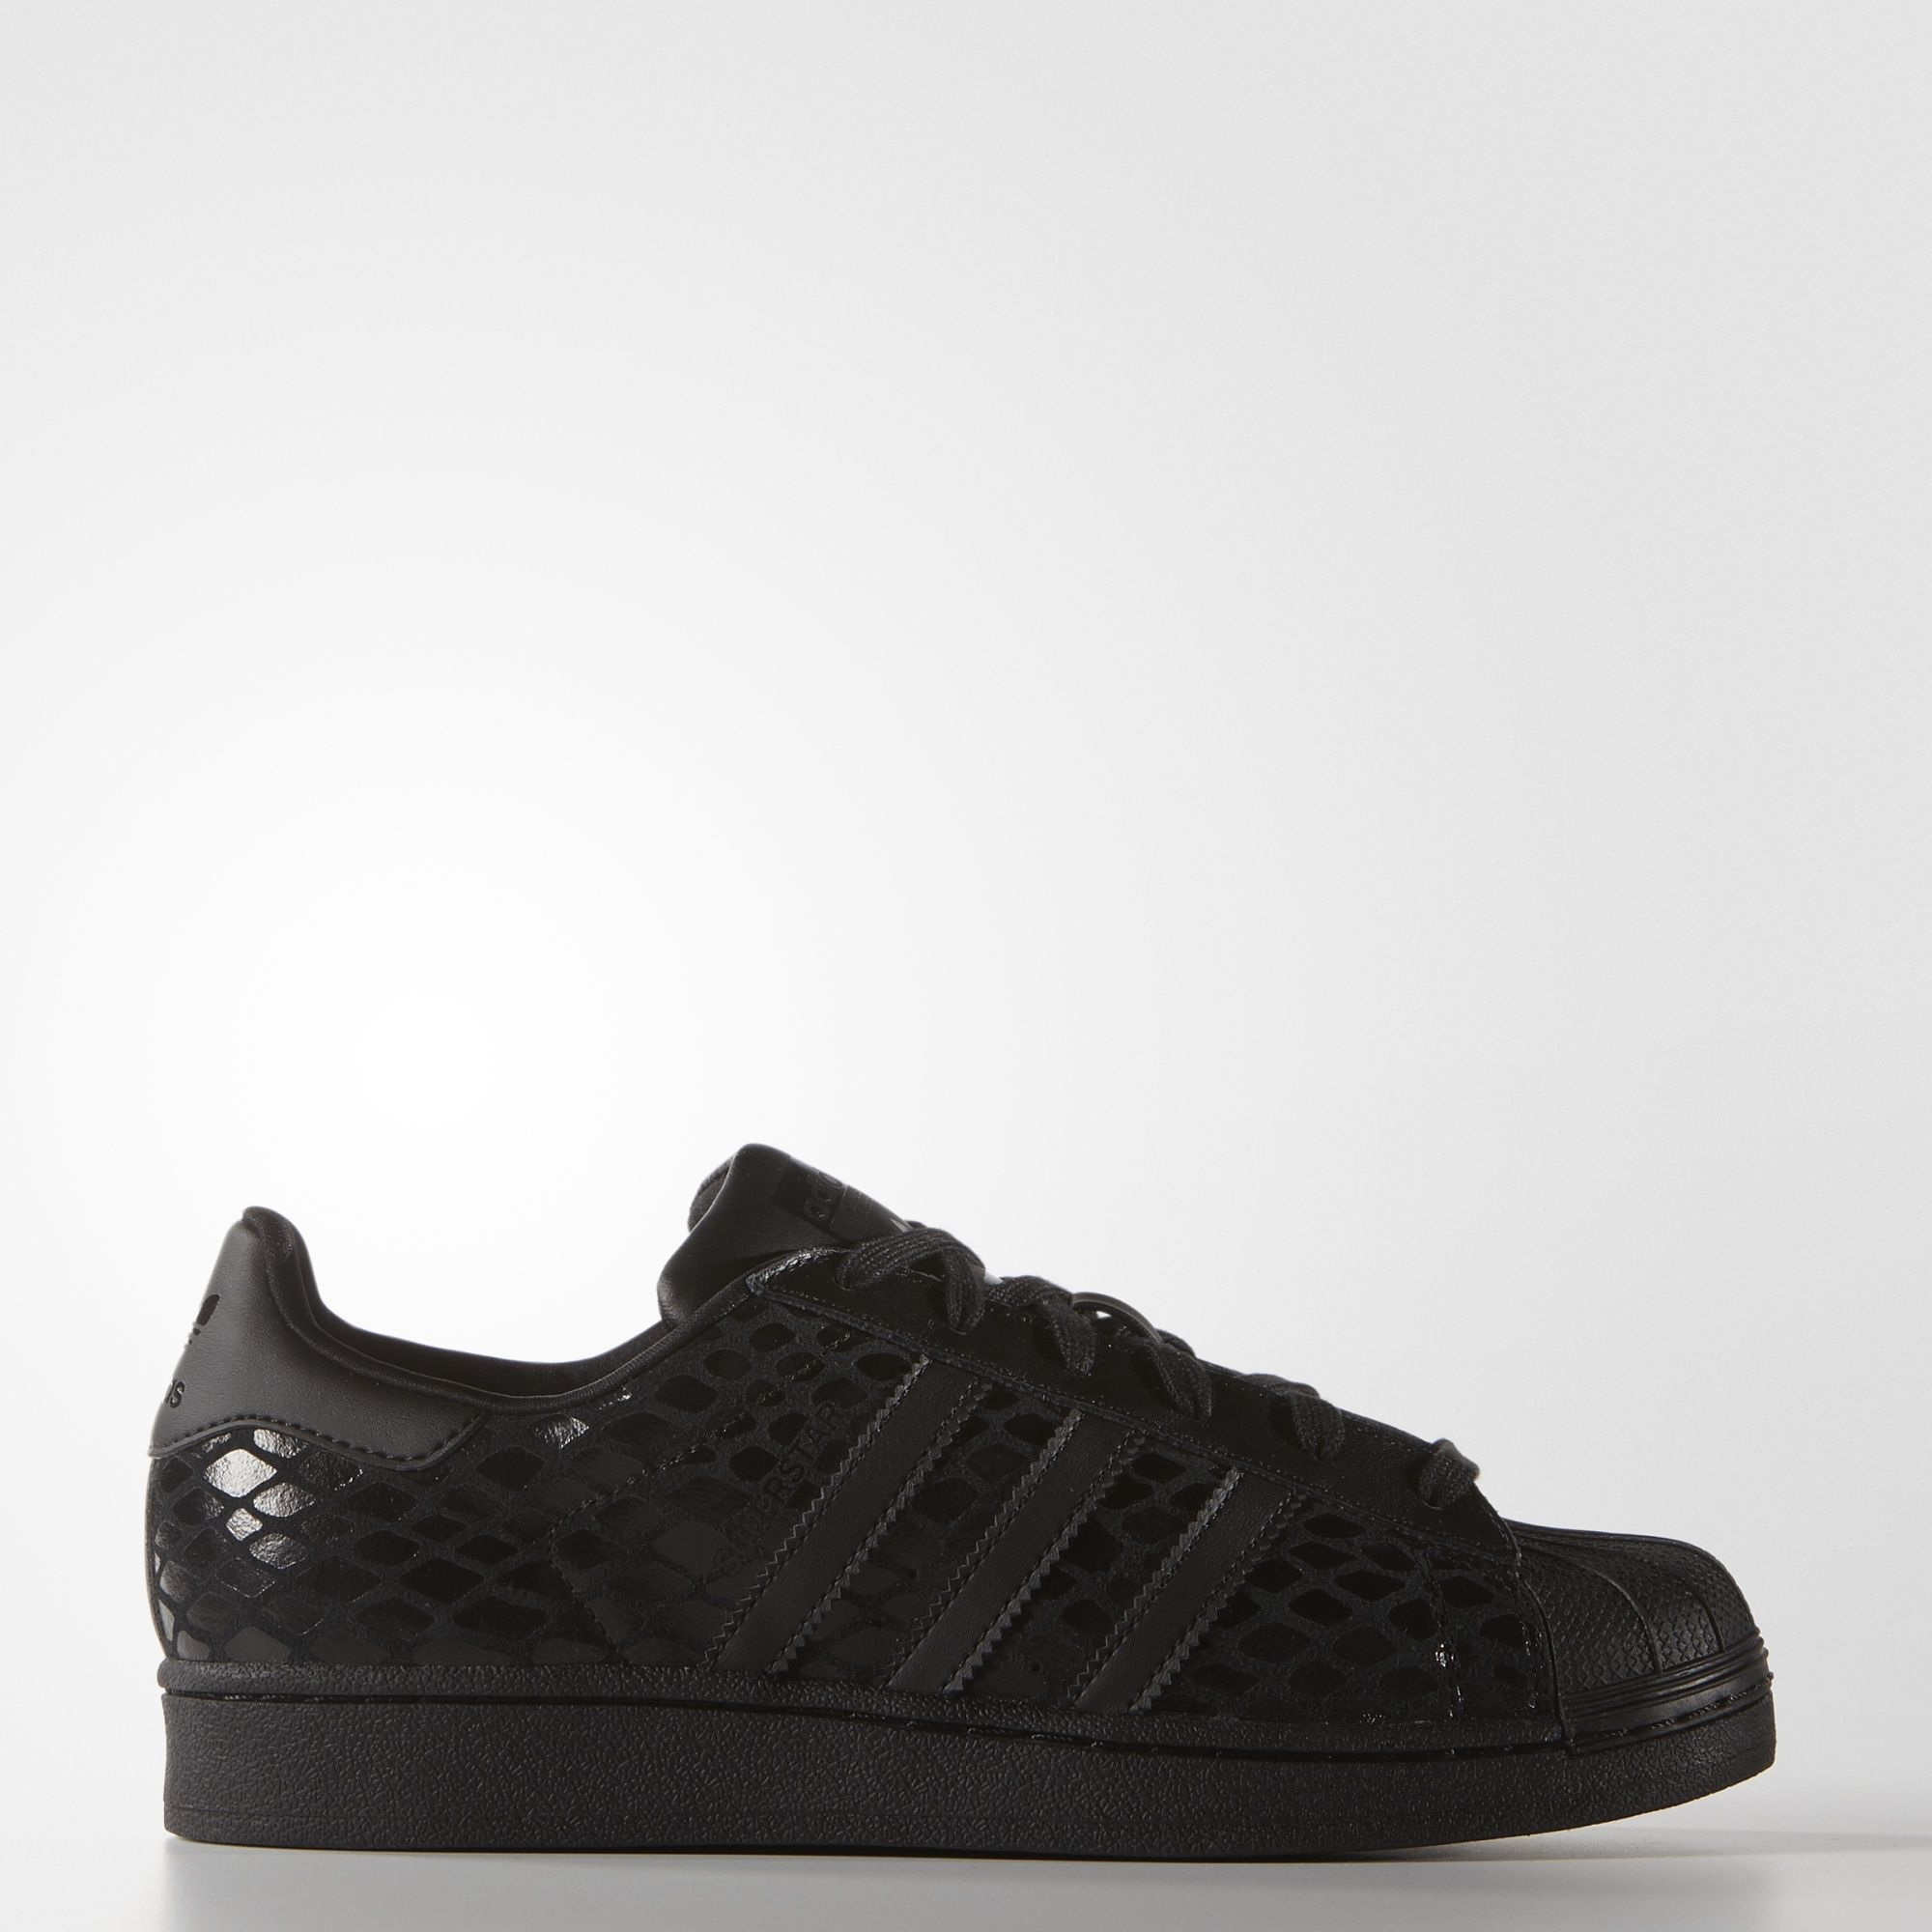 Adidas Superstar color Core Black. | Adidas superstar ...